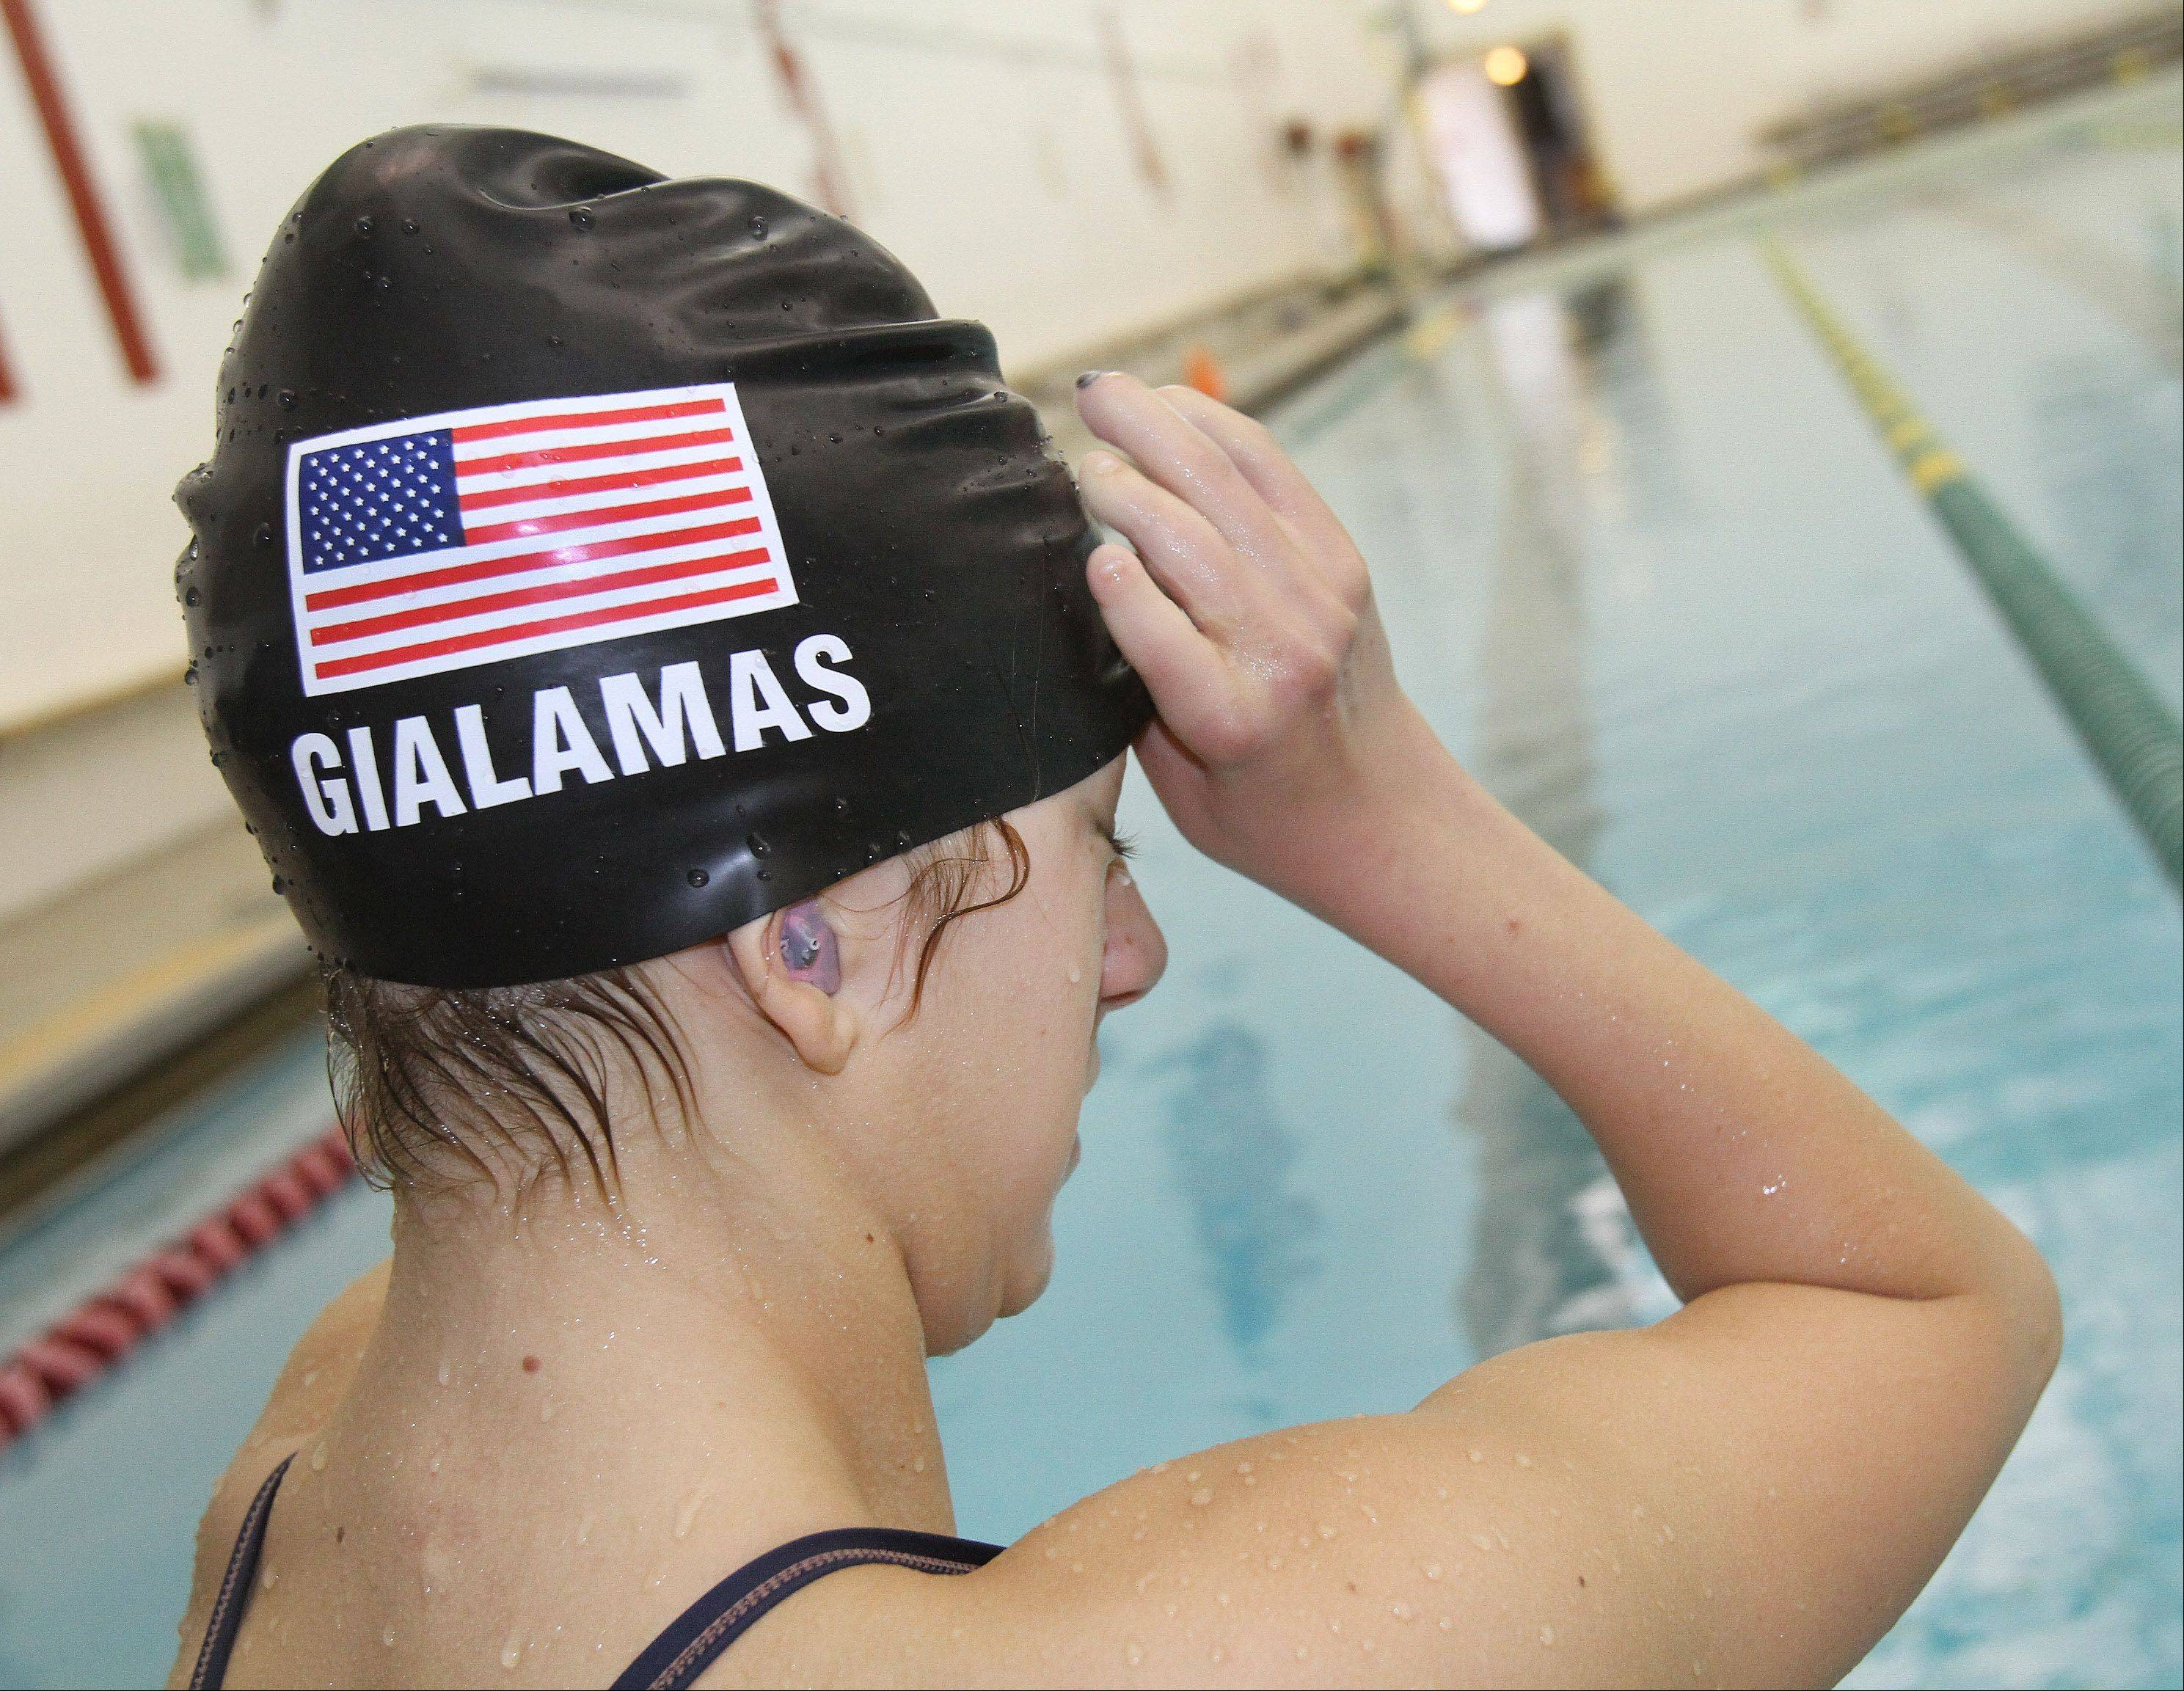 Swimmer Alyssa Gialamas of Naperville recently returned from the International Paralympic Committee Swimming World Championships in Montreal. The 18-year-old won a bronze as part of the 200-meter medley relay team.